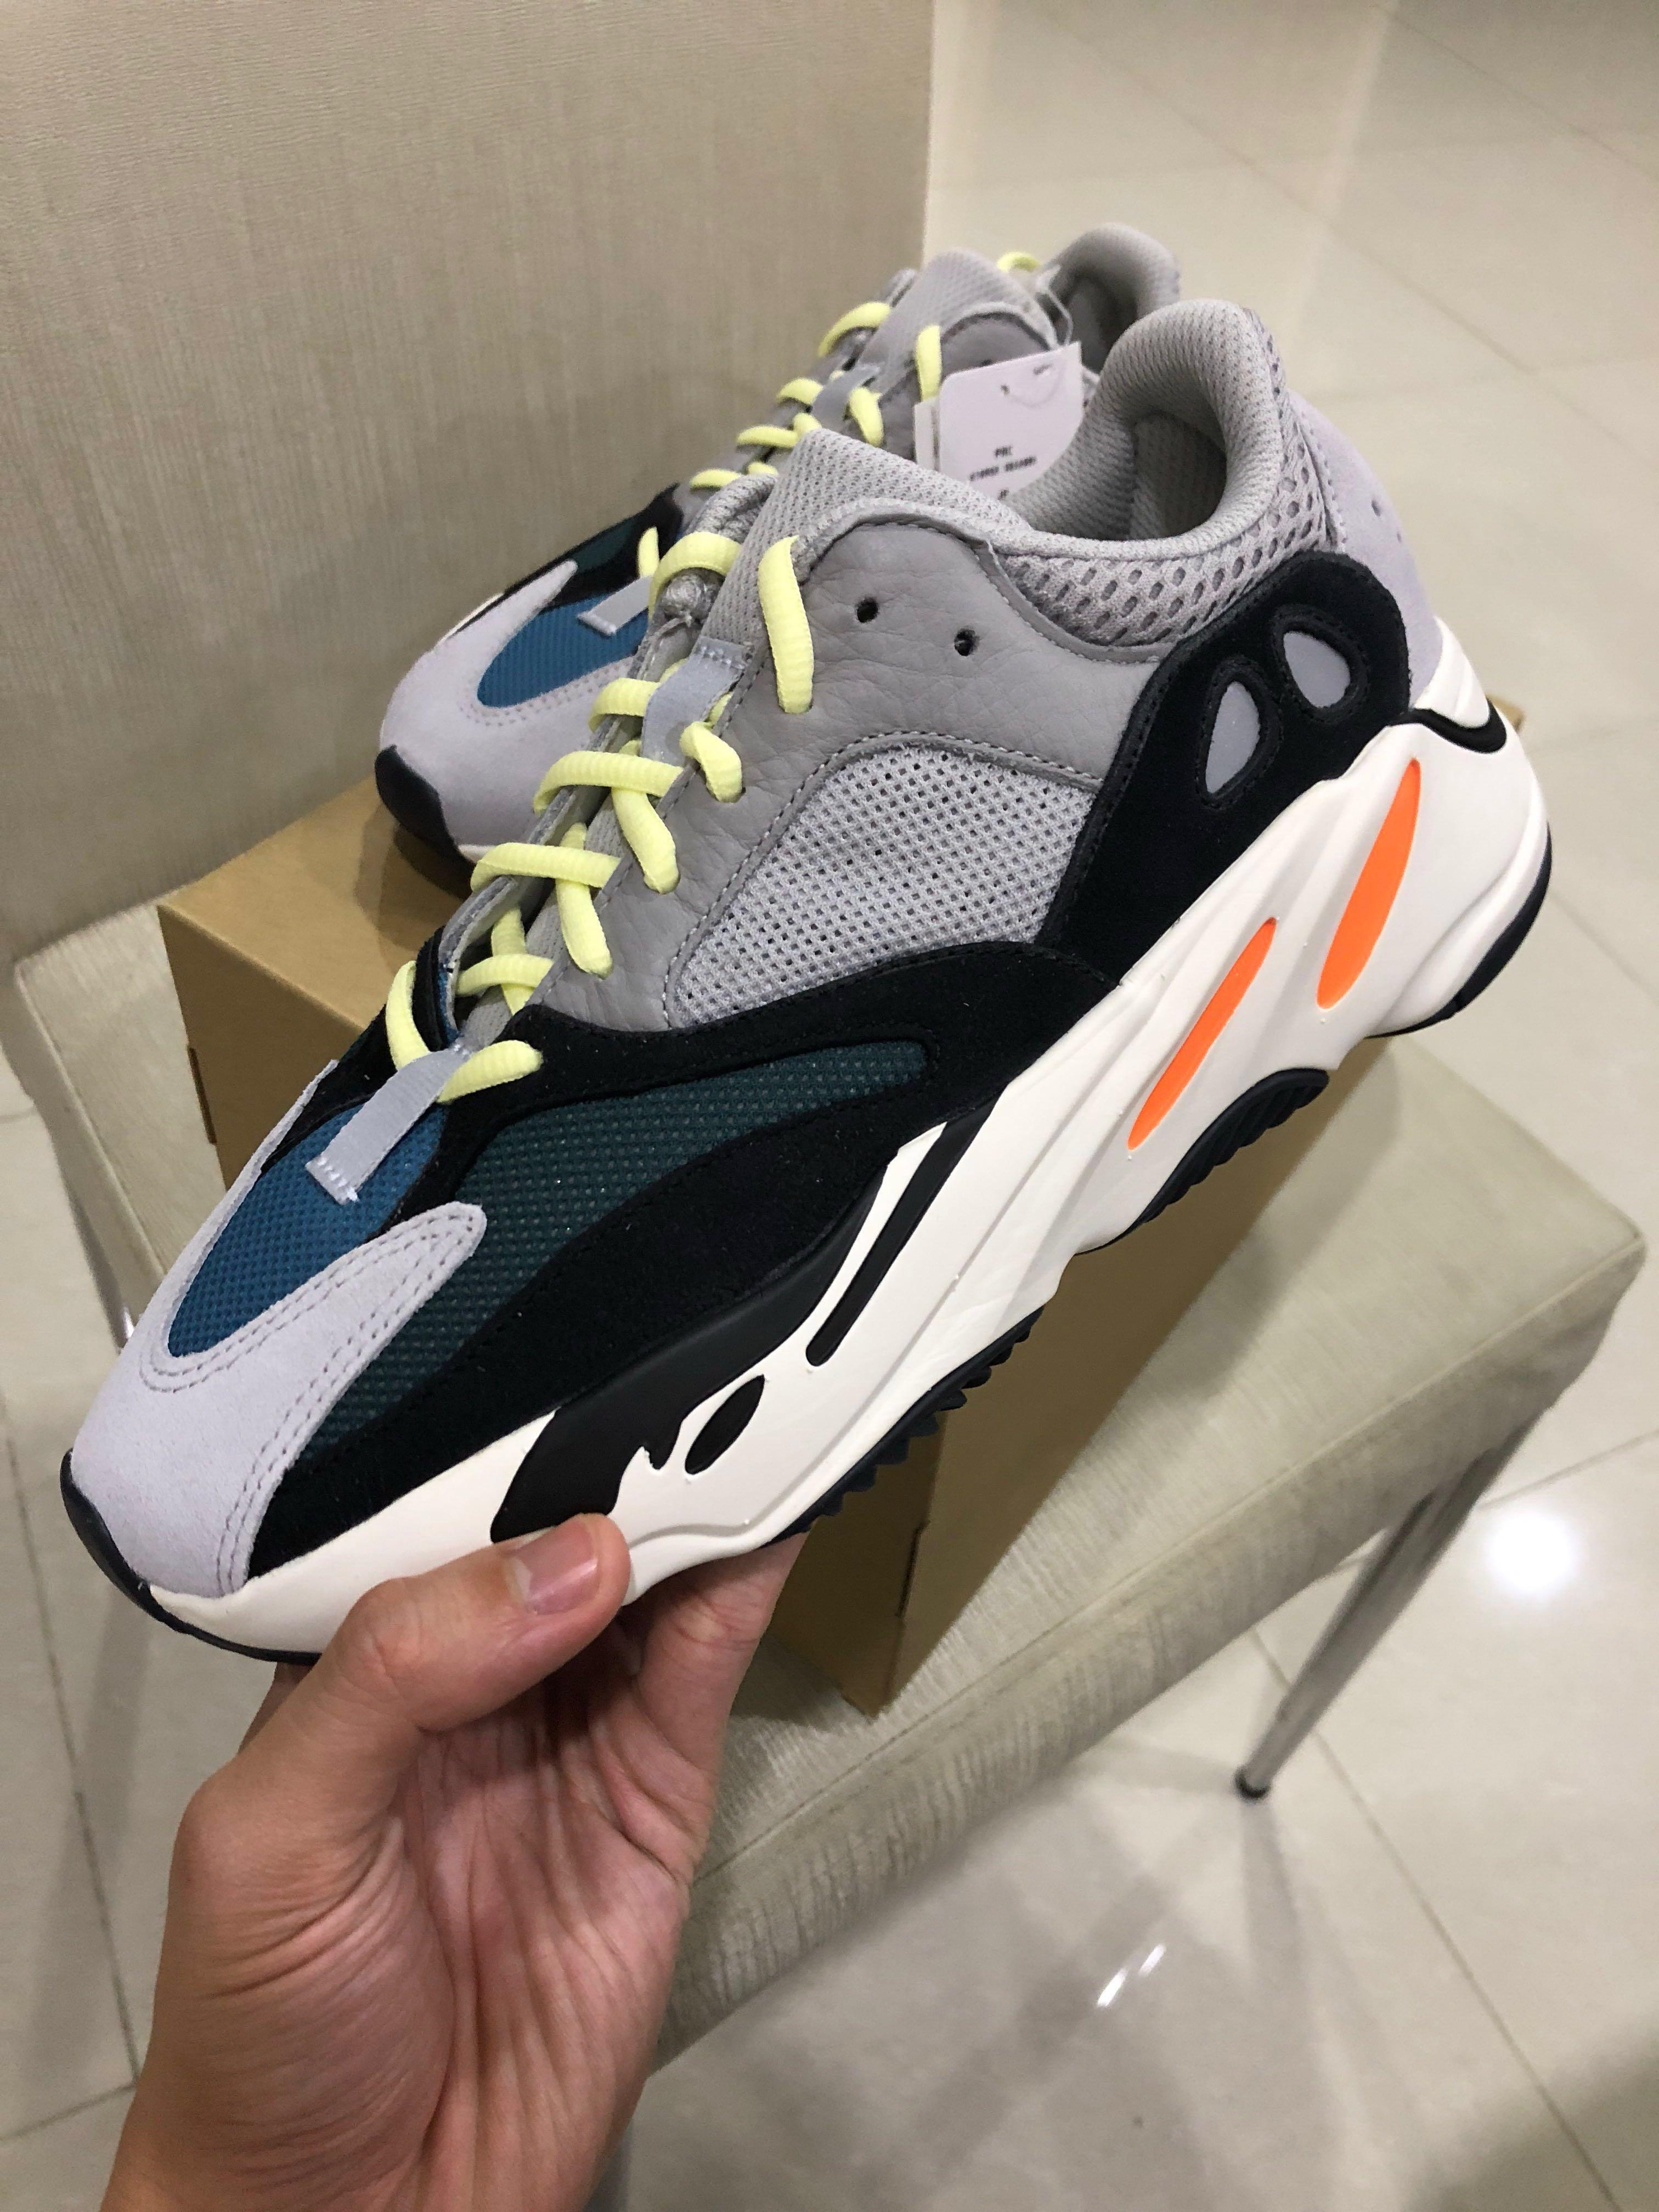 quality design 79599 2921e Authentic Adidas Yeezy Boost Wave Runner 700, Men's Fashion ...